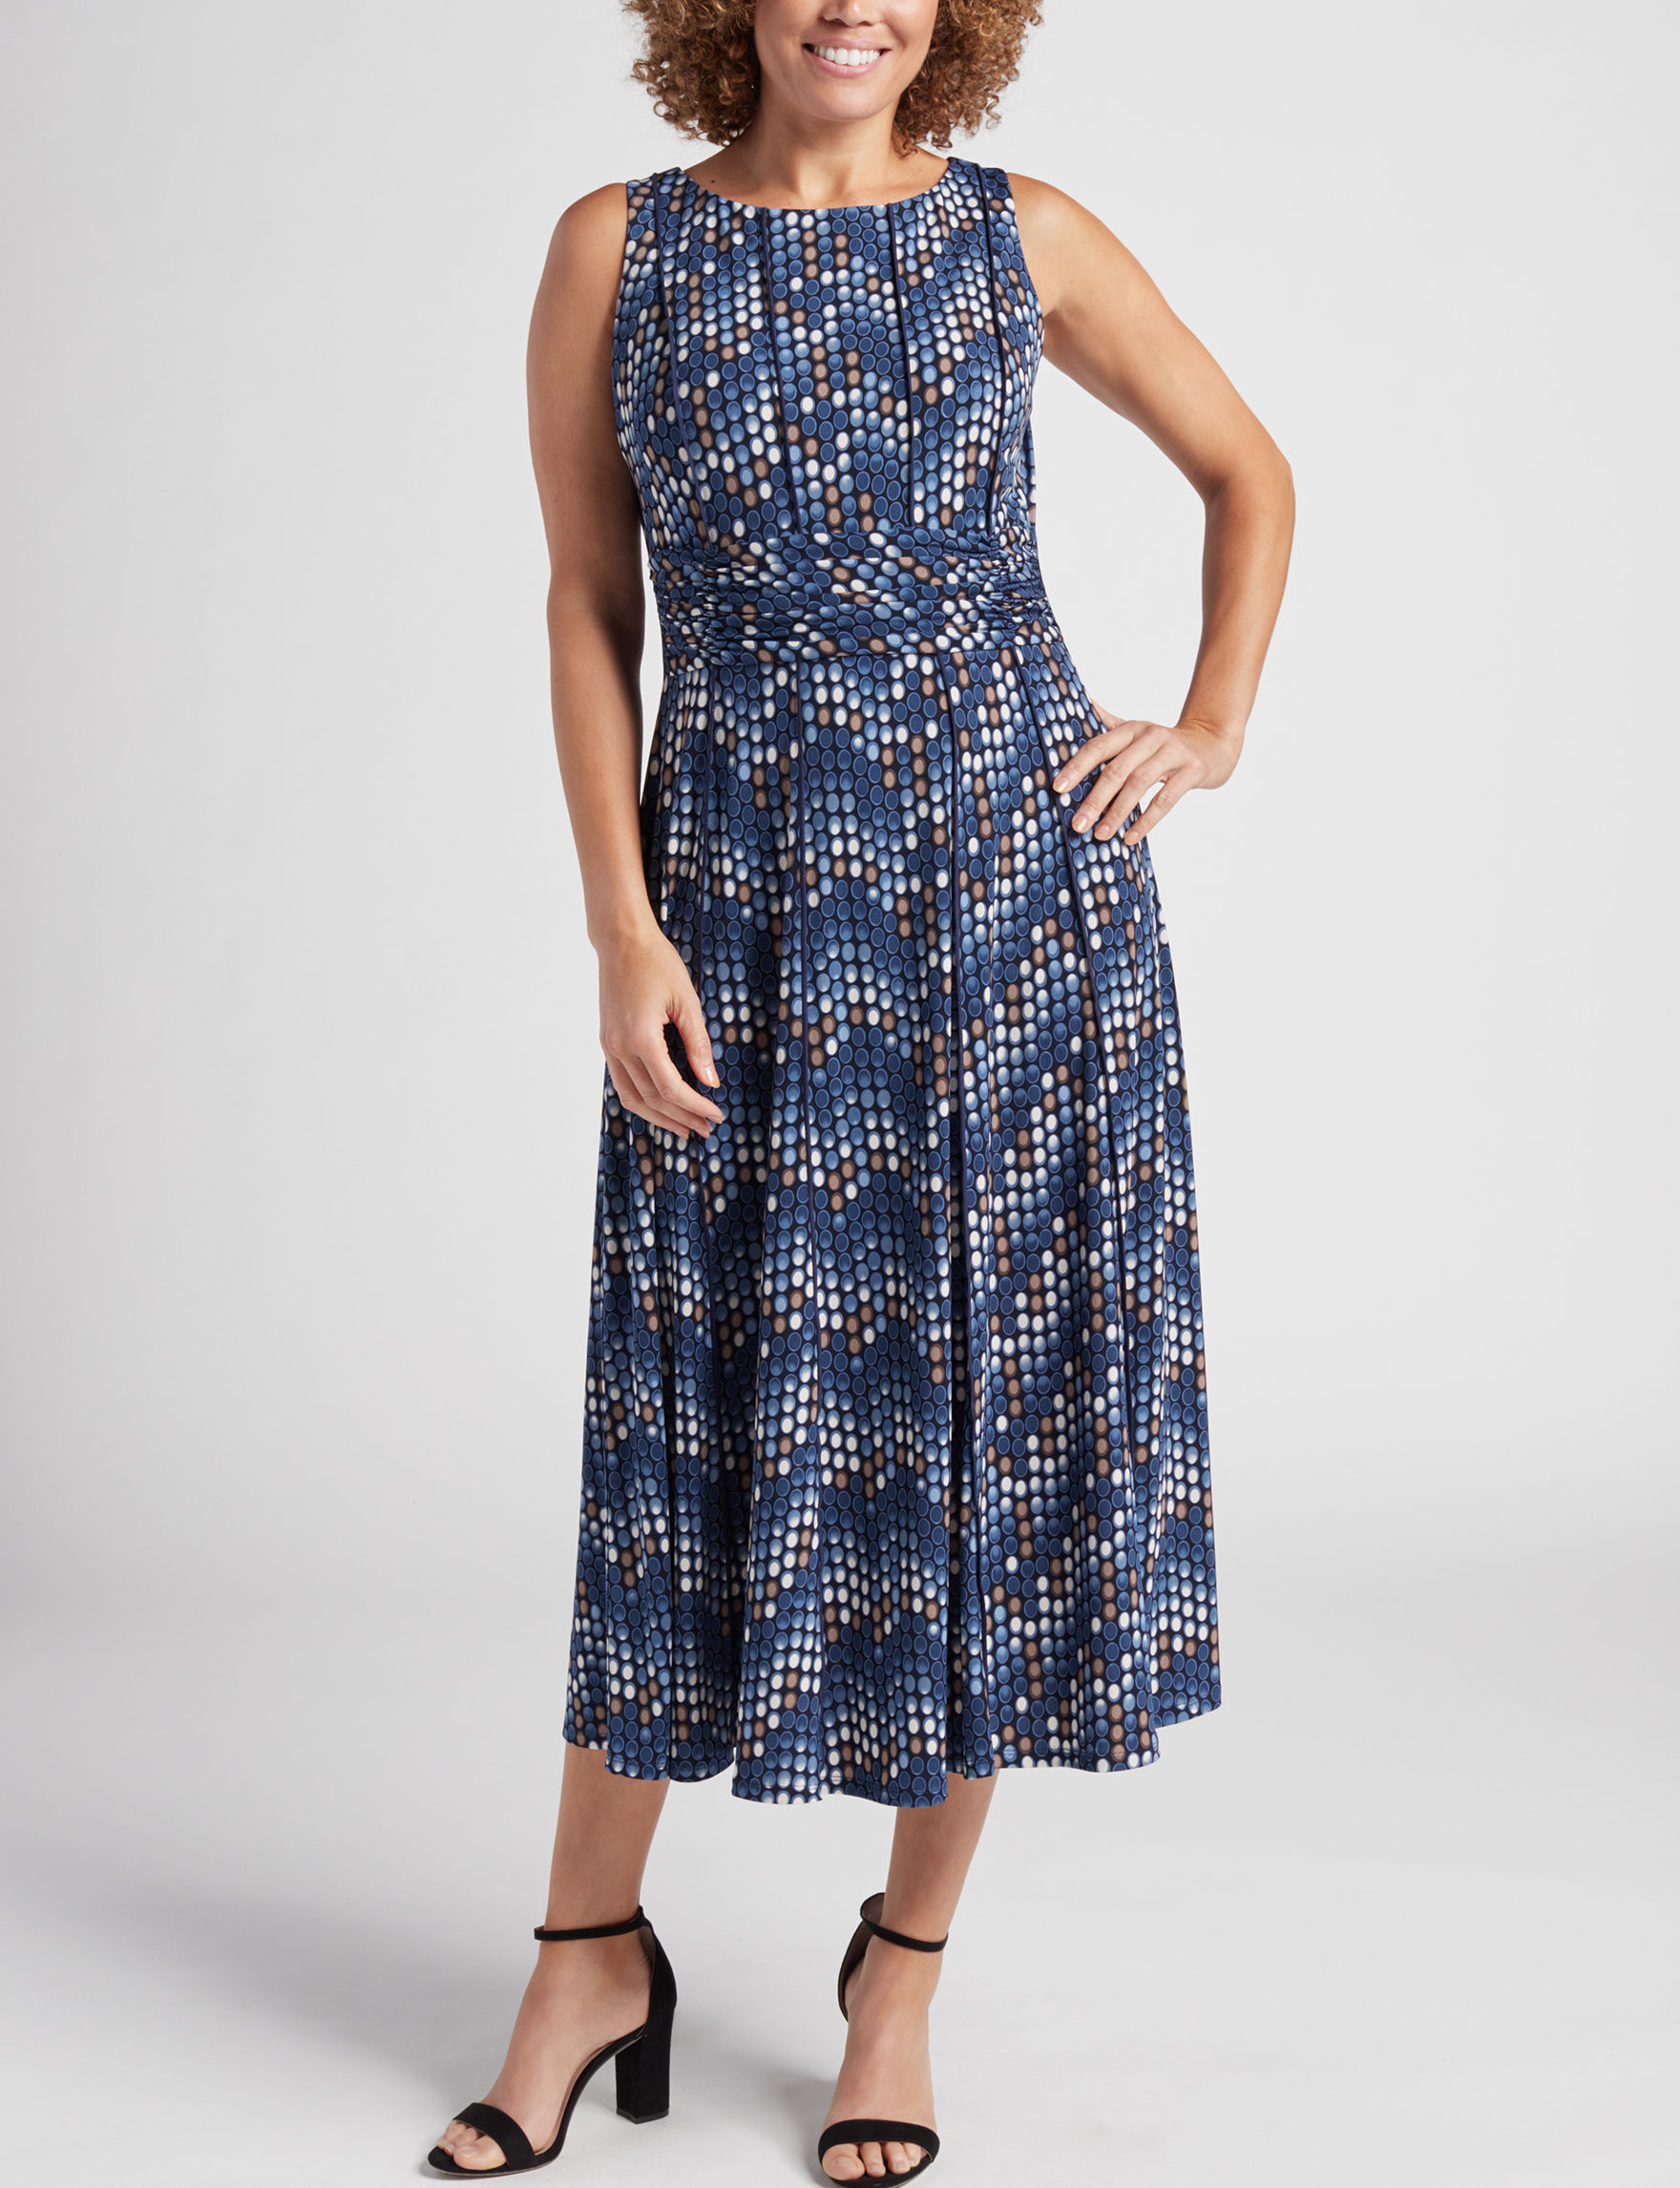 Perceptions Navy Everyday & Casual Fit & Flare Dresses